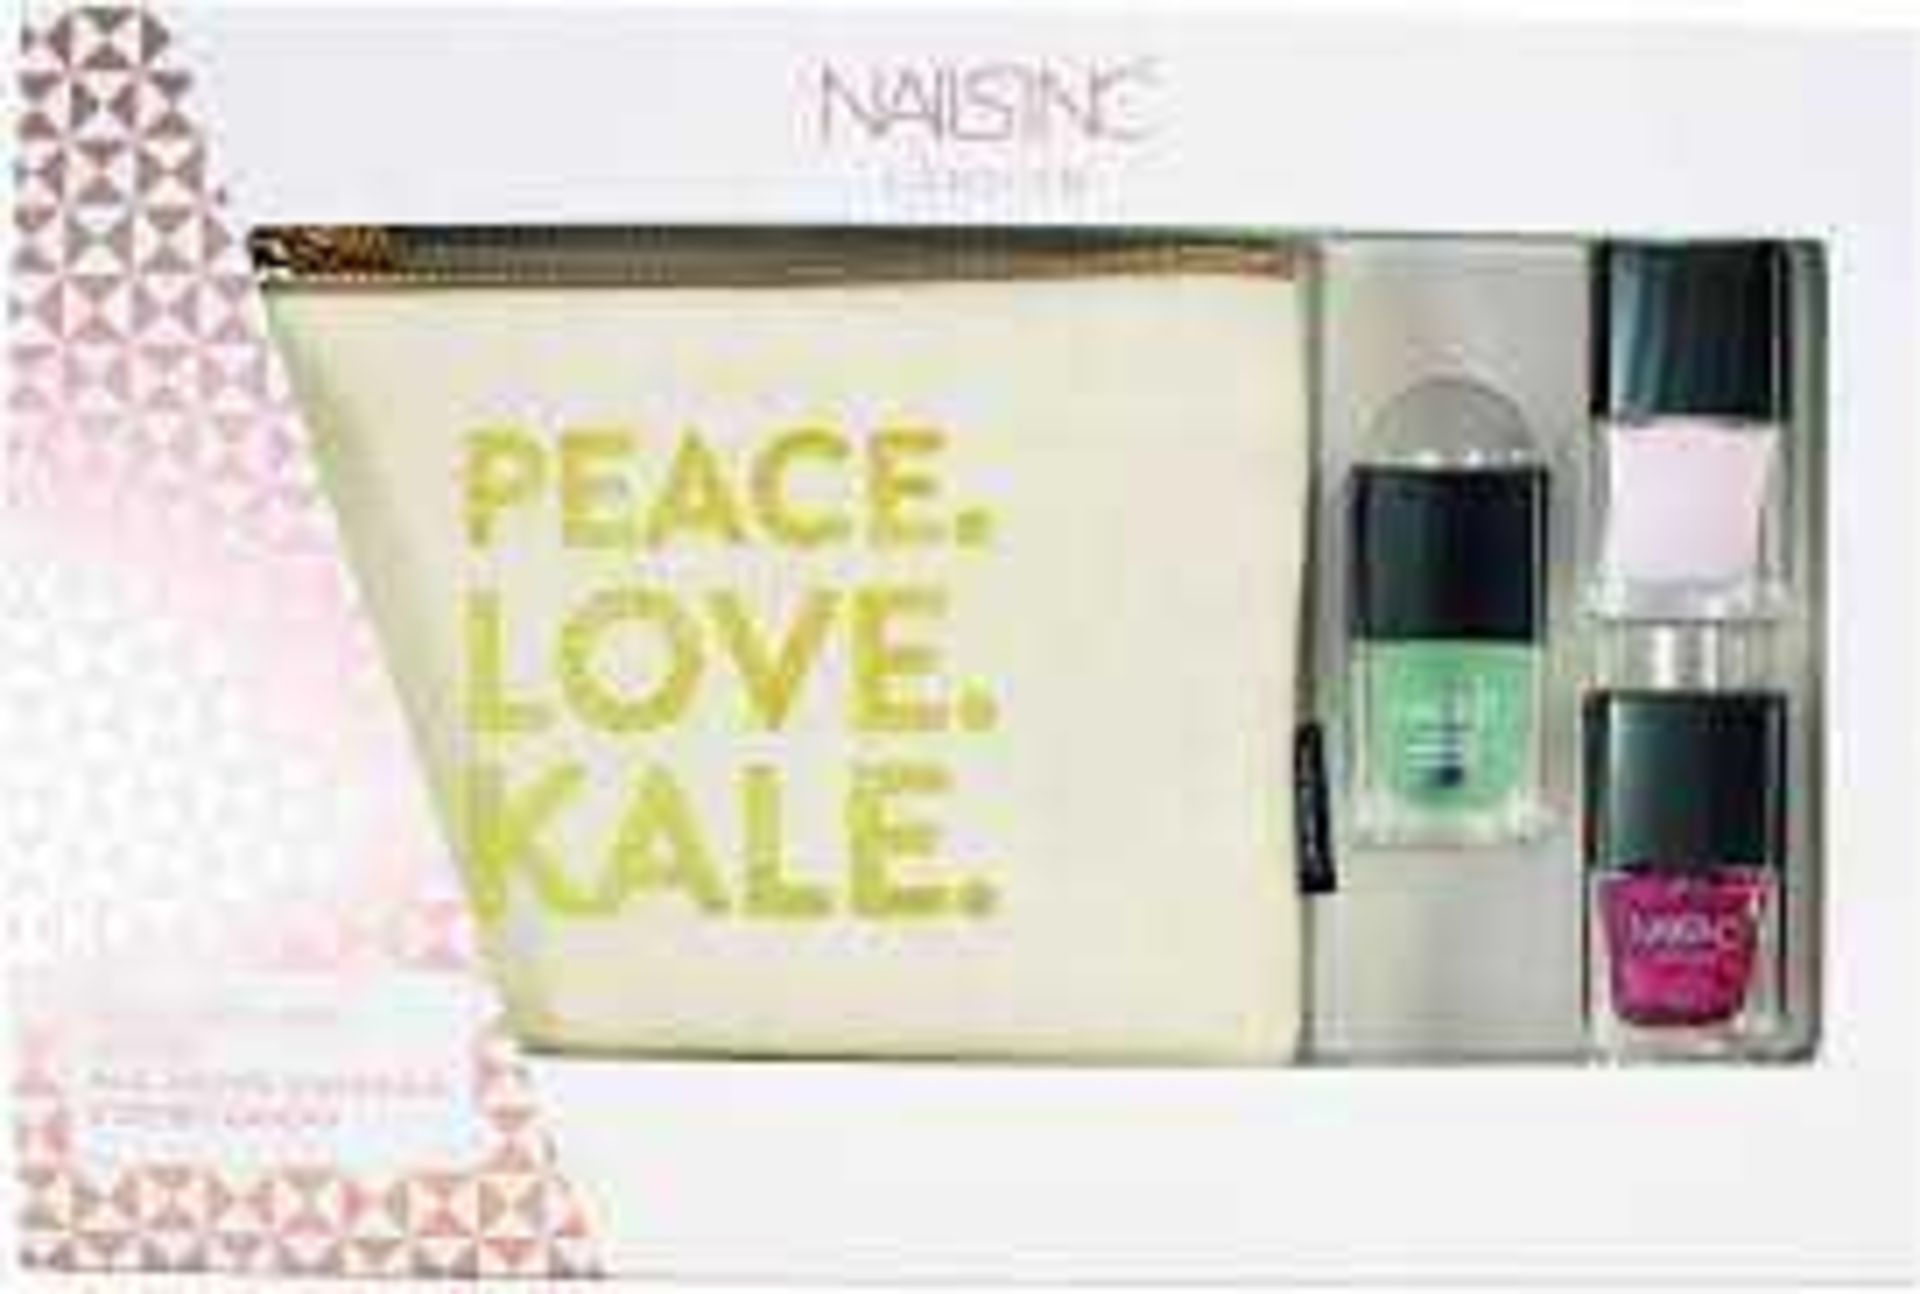 RRP £30 Each Assorted Gift Sets To Include Nailsinc London And 500 Fiat For Men Gift Set - Image 2 of 2